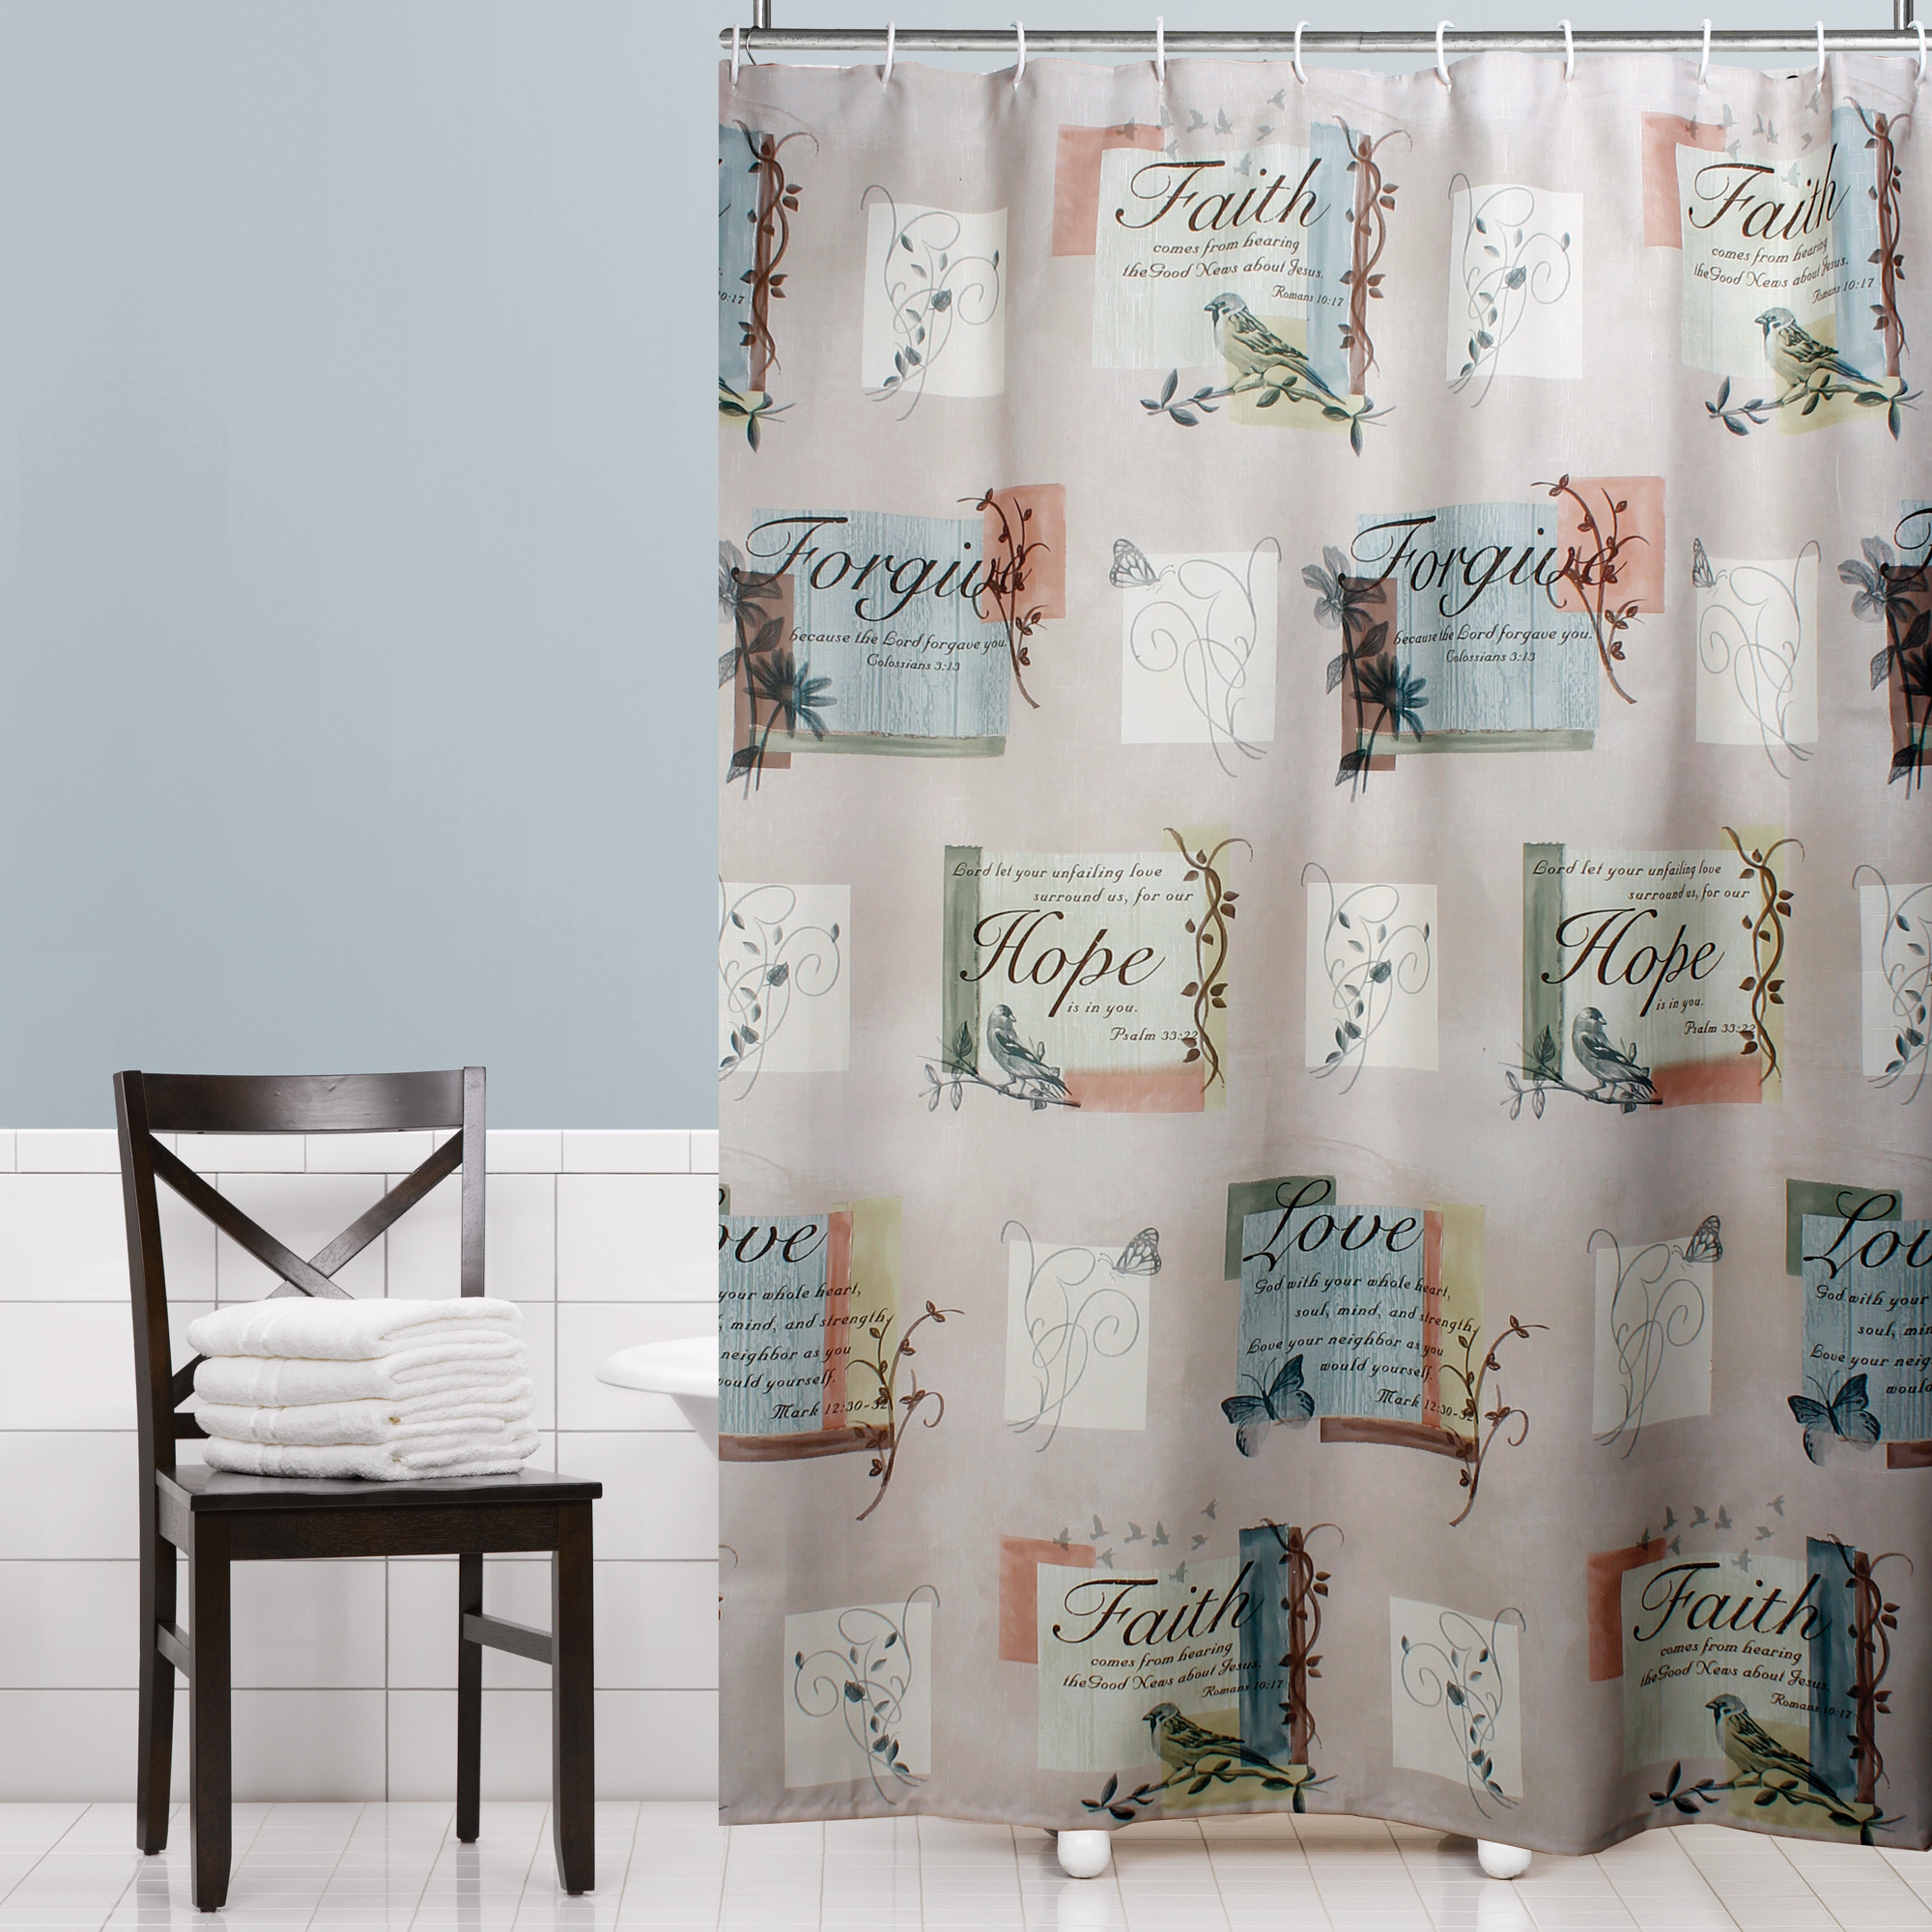 Walmart Shower CurtainsFabric Hopeful